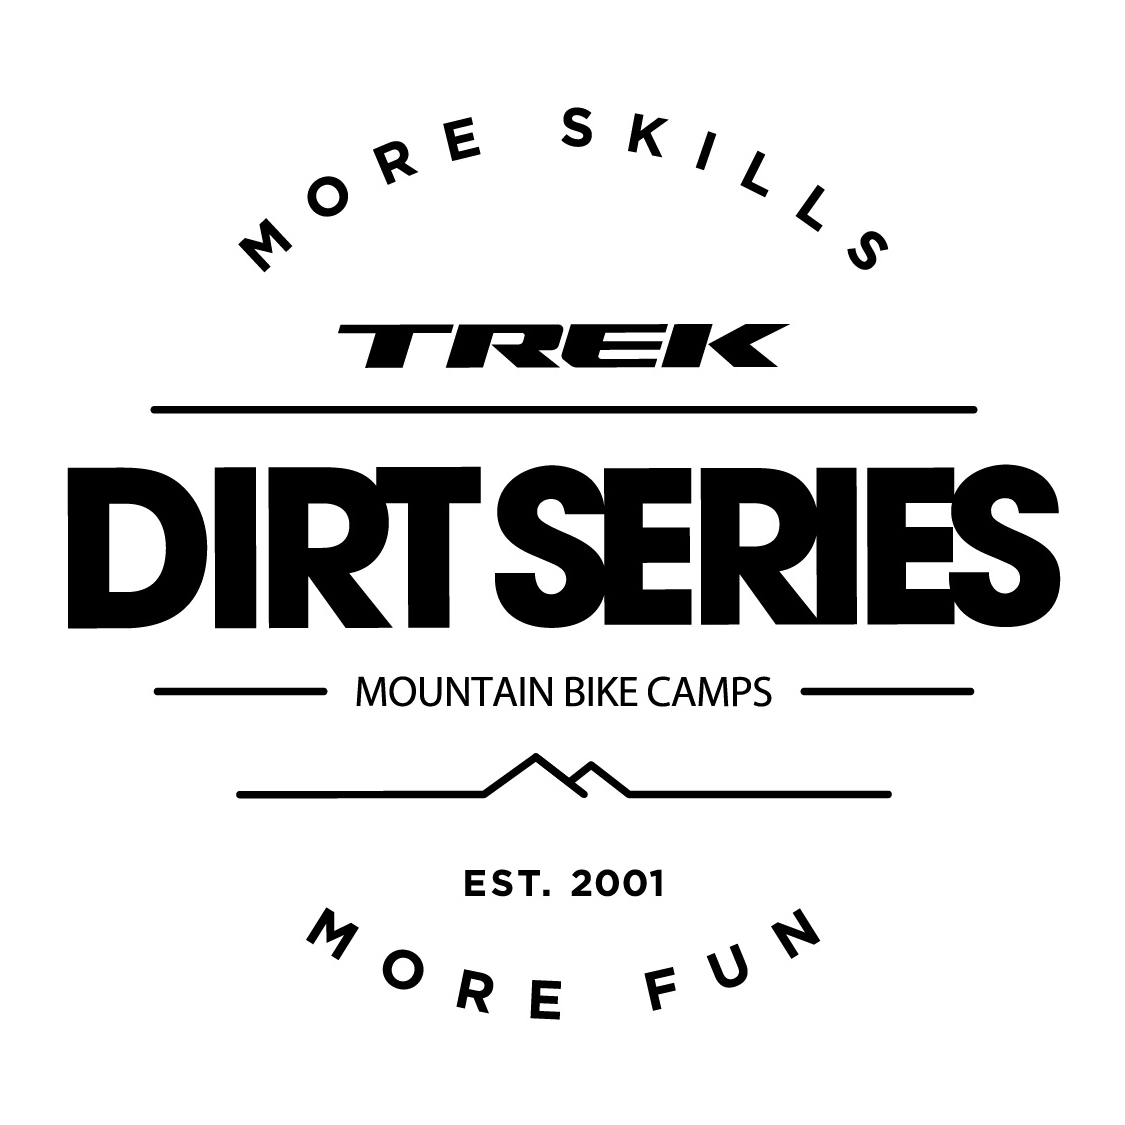 Dirt Series Mountain Bike Camp - Fruita, CO